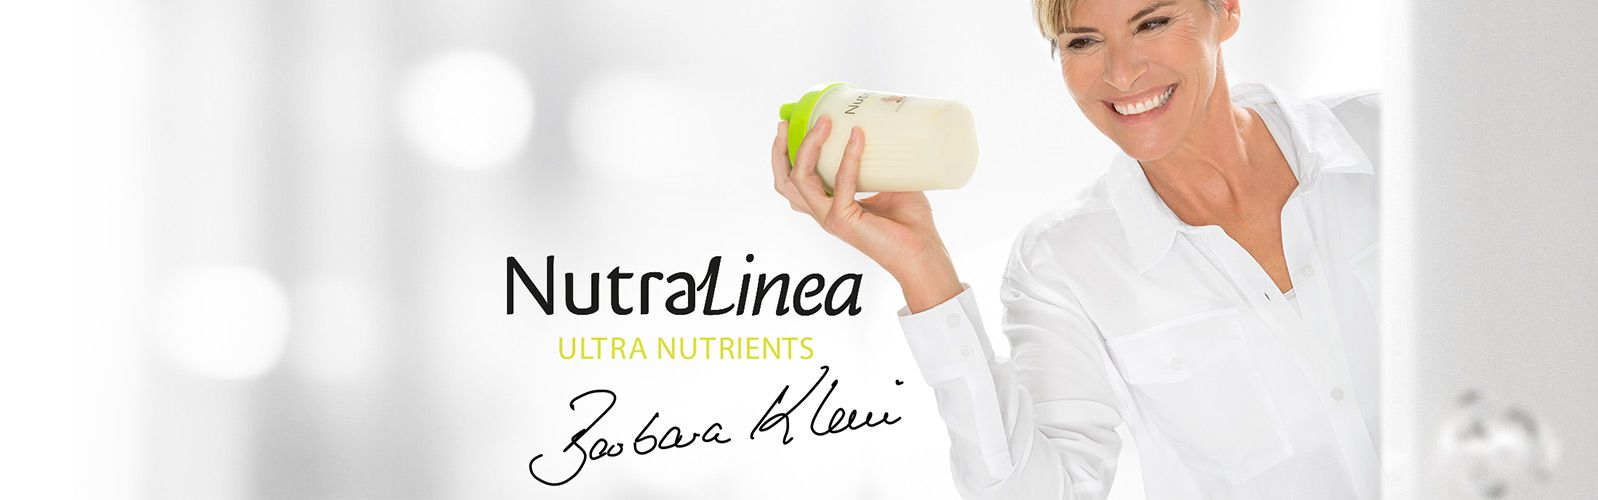 NUTRALINEA by Barbara Klein